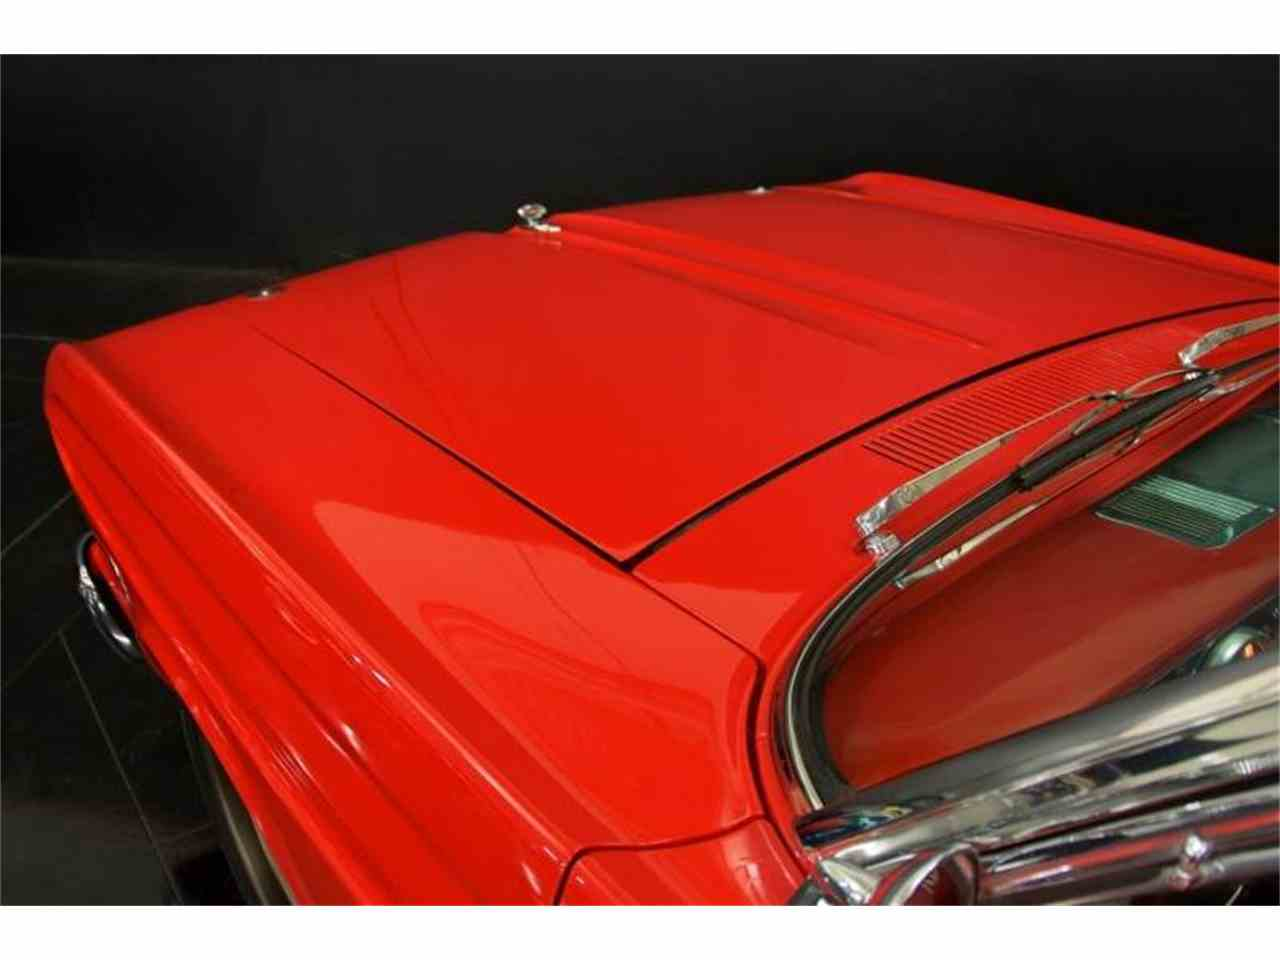 Large Picture of 1964 Ford Falcon - $52,194.00 - LSP9